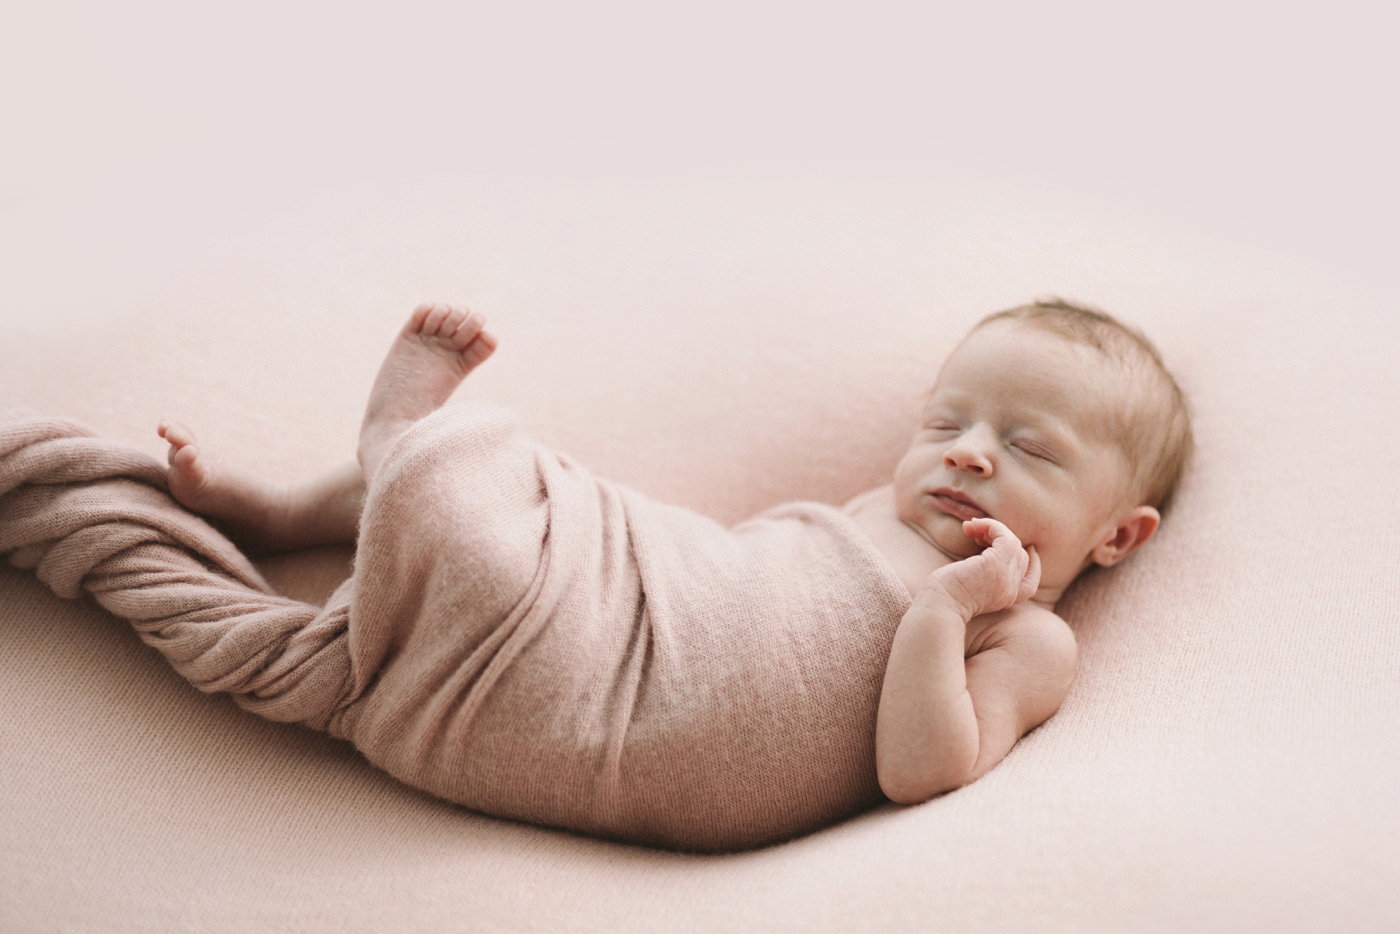 Goldie - Natural Newborn Photographer in Adelaide - Simple and Beautiful Newborn Photography - Katherine Schultz - www.katherineschultzphotography.com_0008.jpg